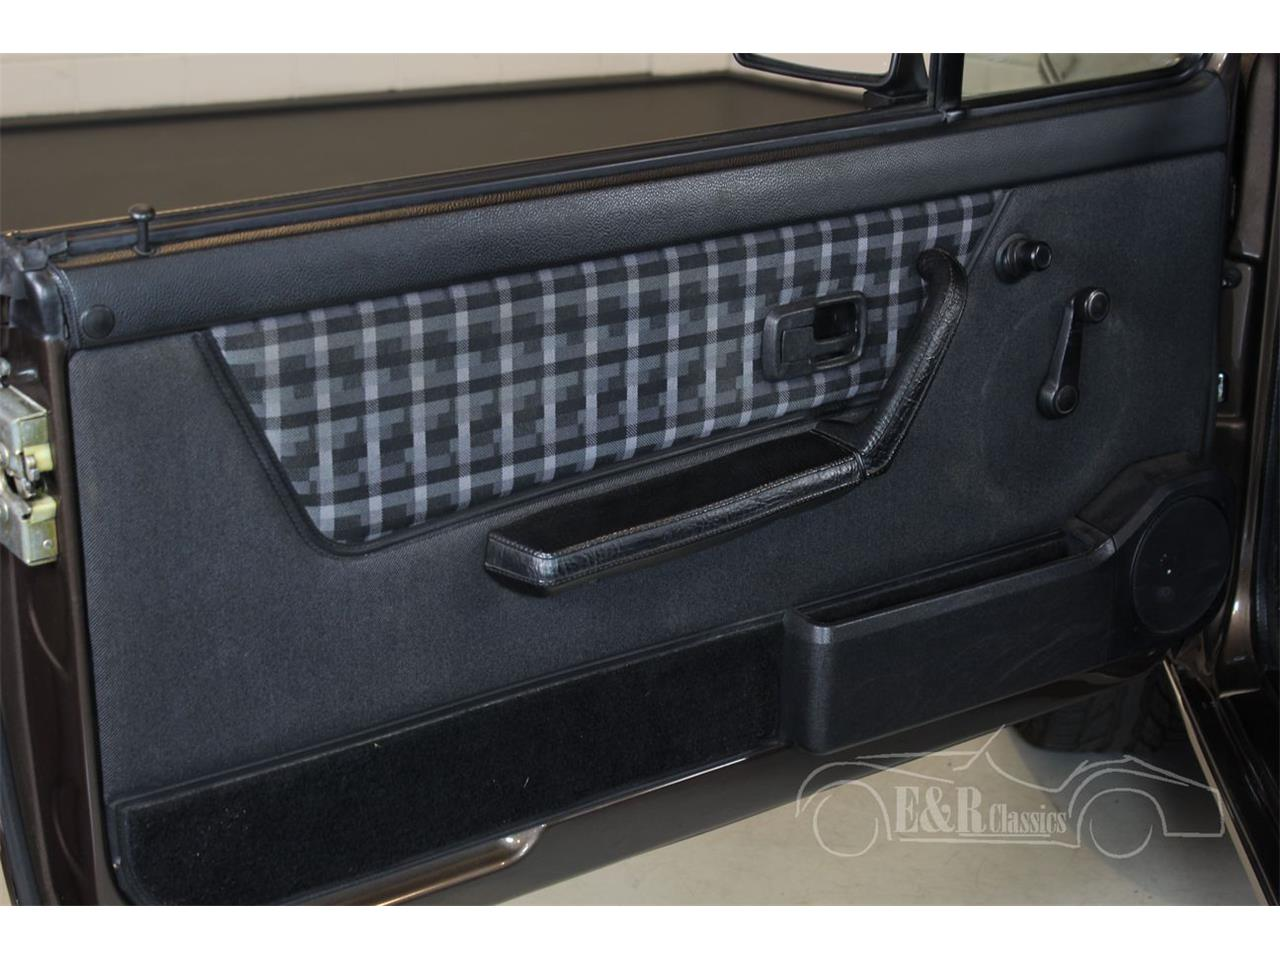 Large Picture of '84 Volkswagen Golf - $19,100.00 Offered by E & R Classics - PH4B